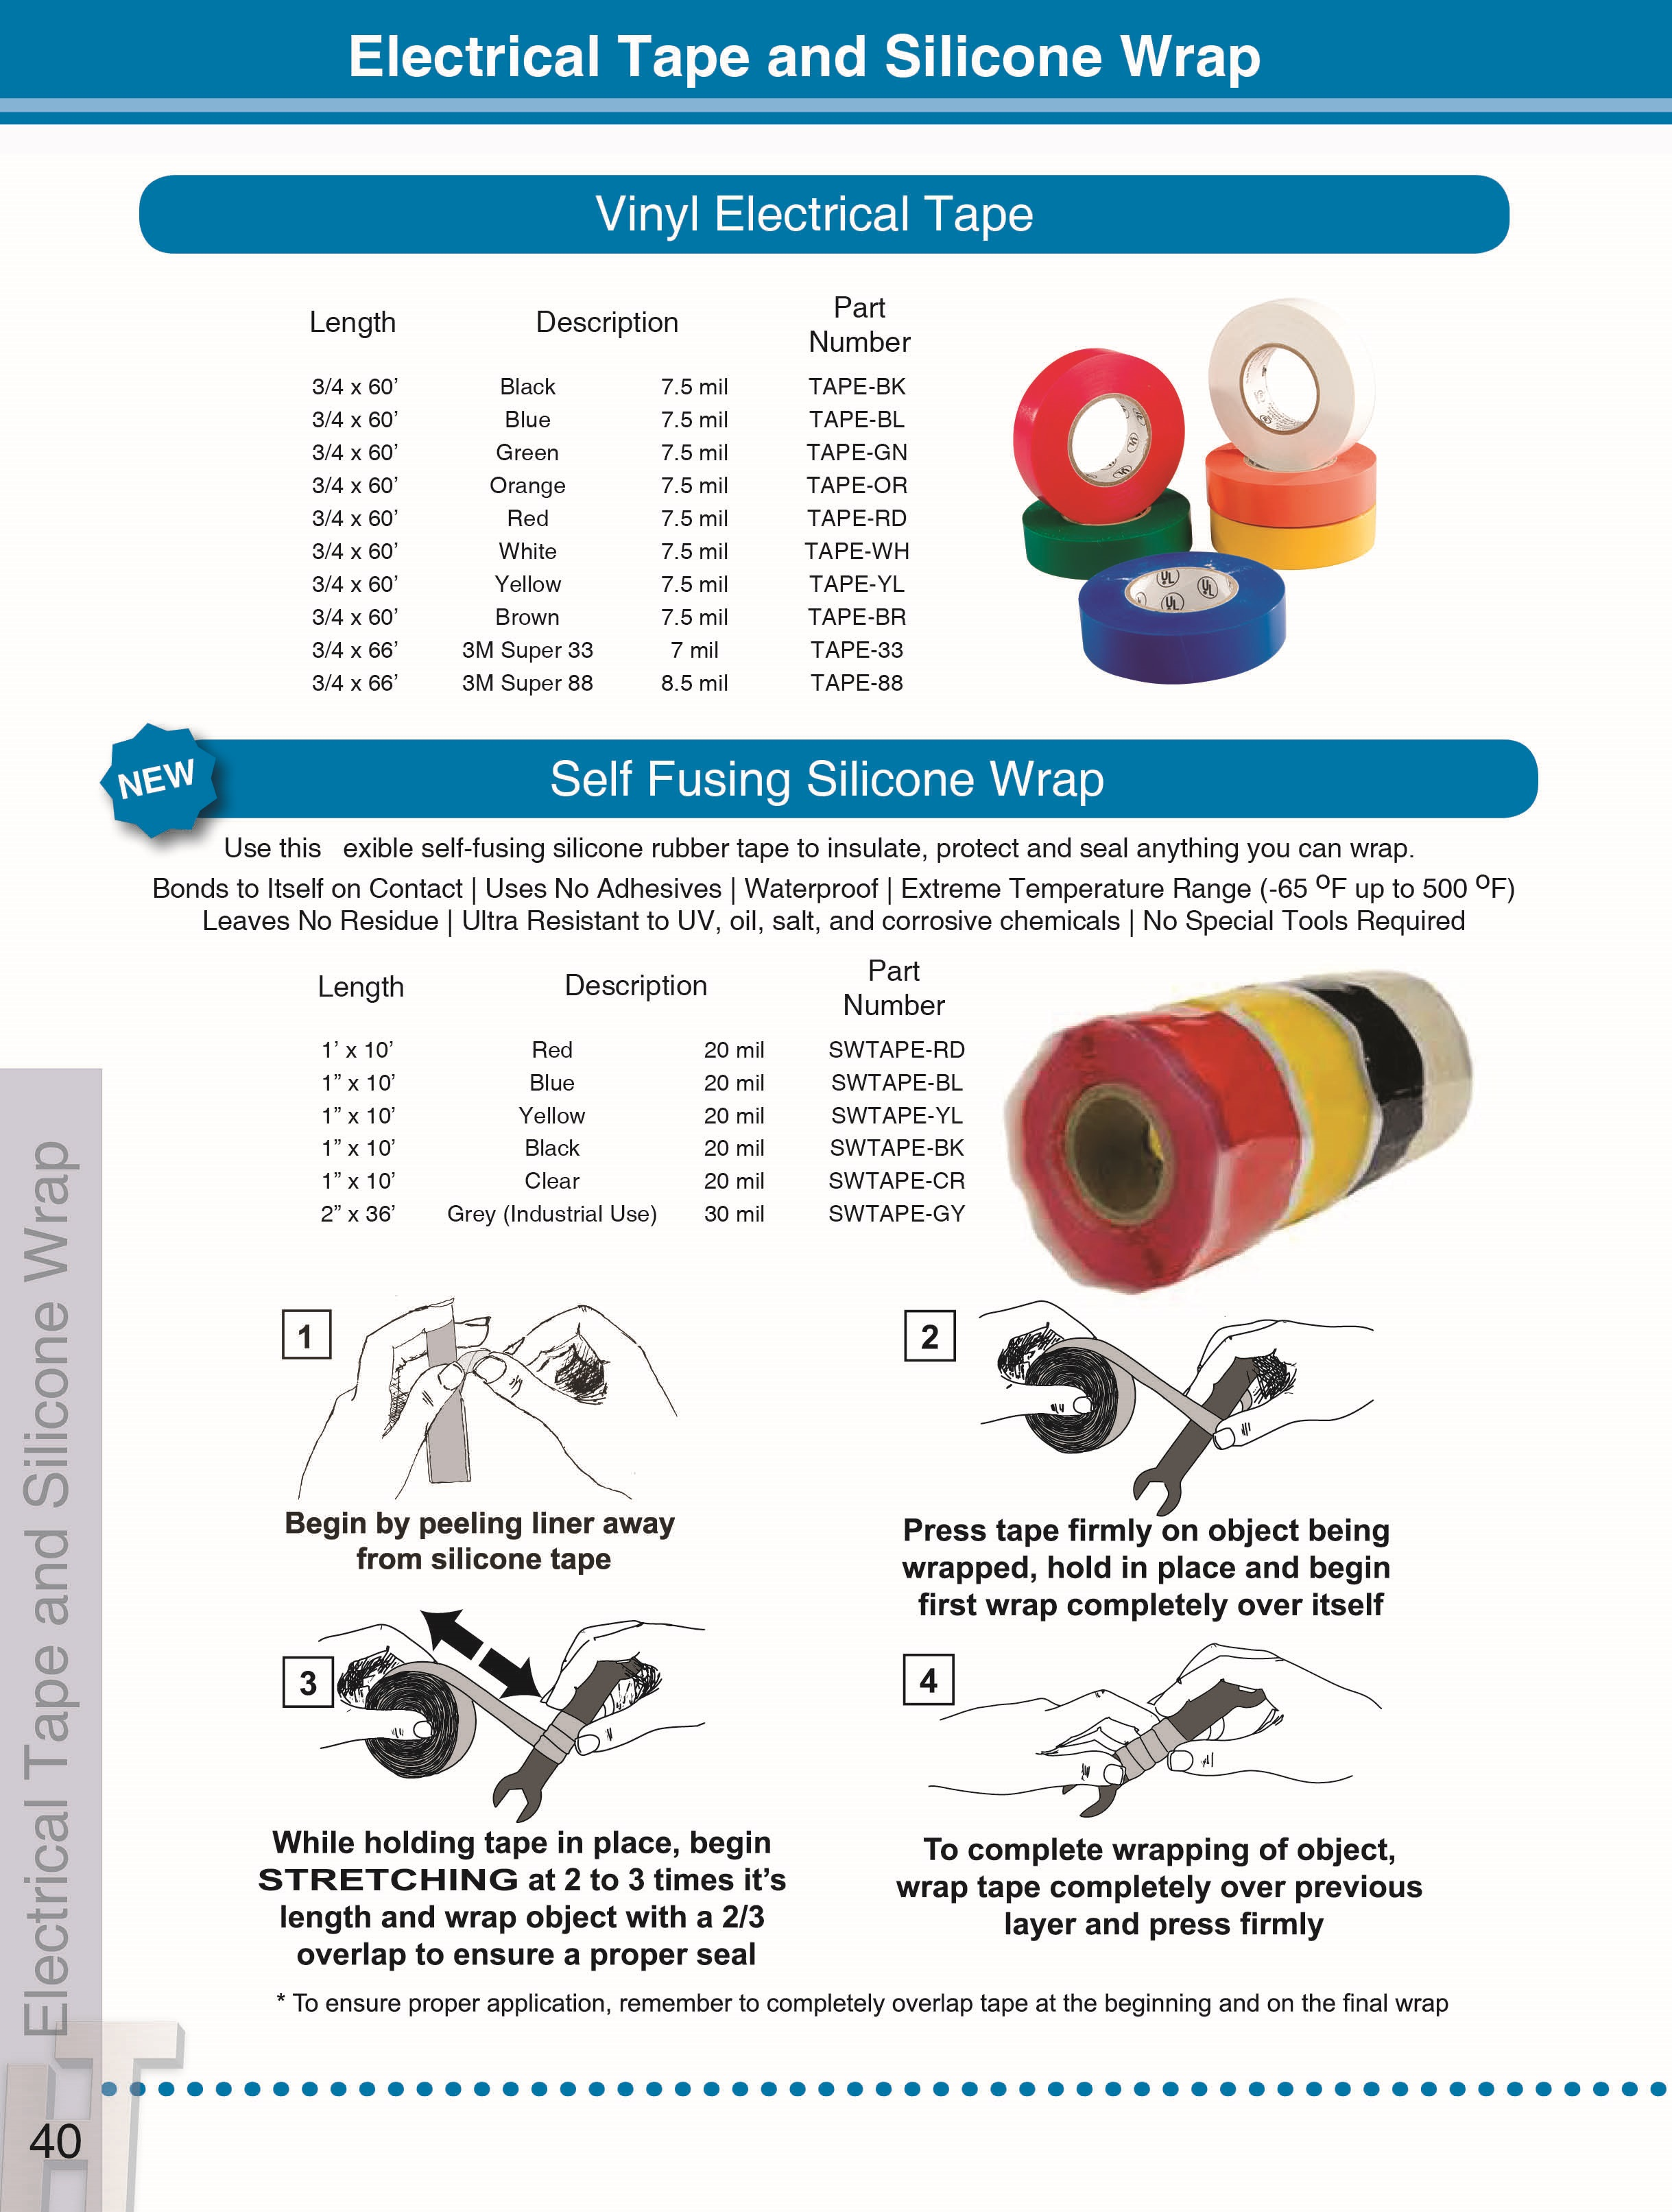 Tape, Electrical and Silicone Wrap - DLP Industries